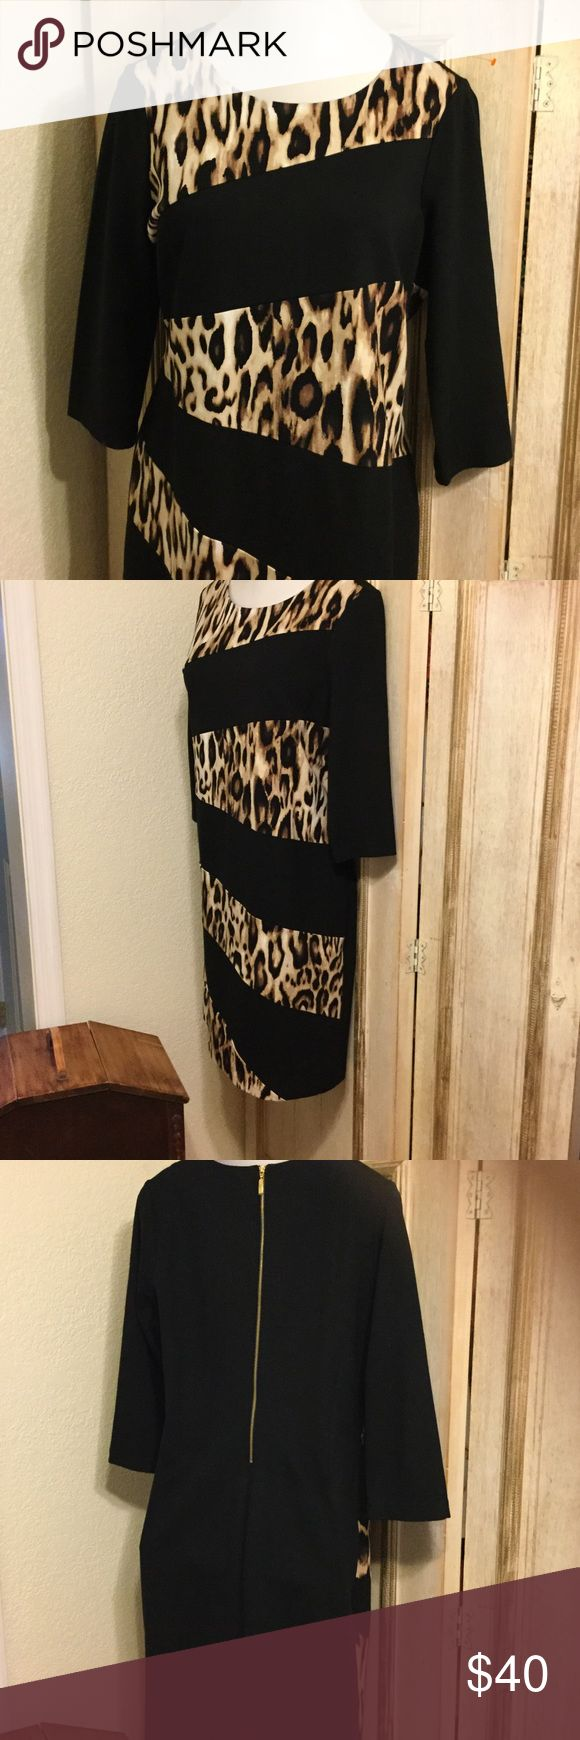 Fabulous Chicos dress! Size 2.5 Splice Animal print on front solid black on back. Exposed gold back zipper and lined. Waist 18 40 inches long from the shoulder bust 22inches lying flat. Figure flattering. No low ball offers please. Chico's Dresses